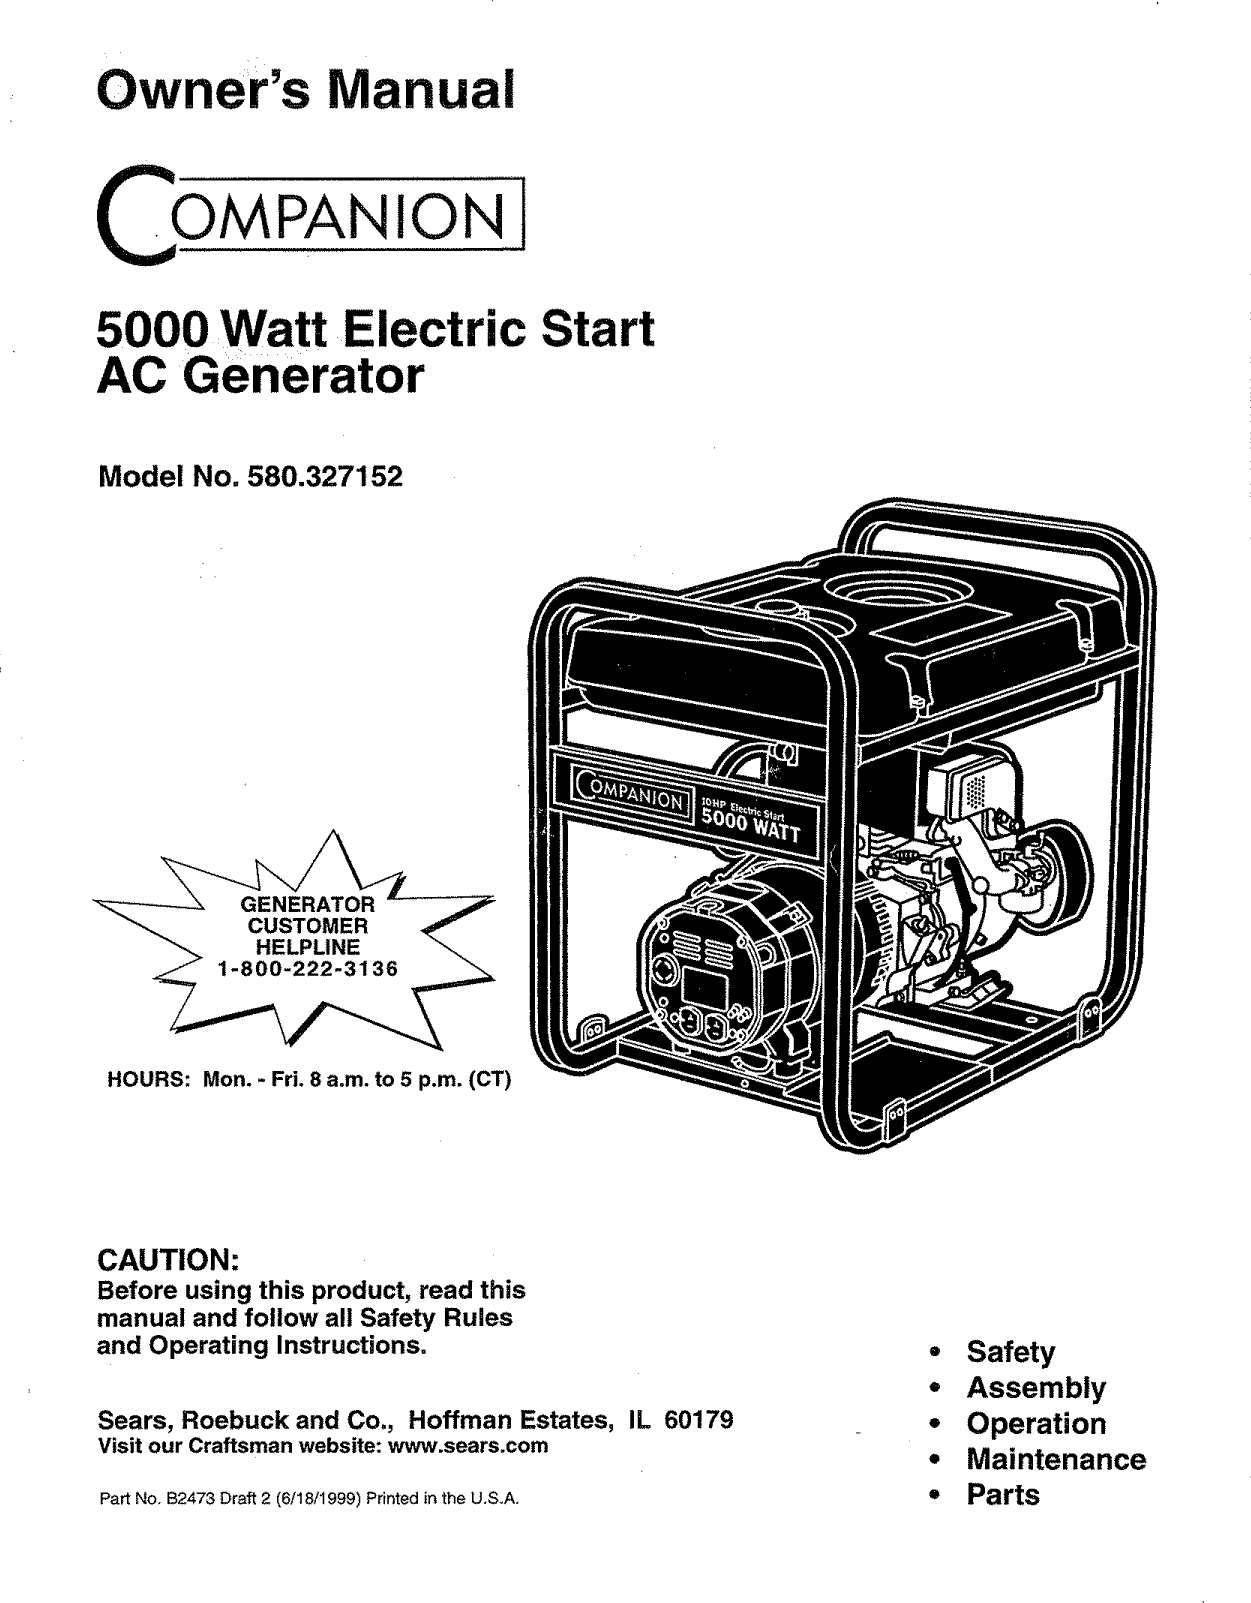 Craftsman User Manual Watt Portable Ac